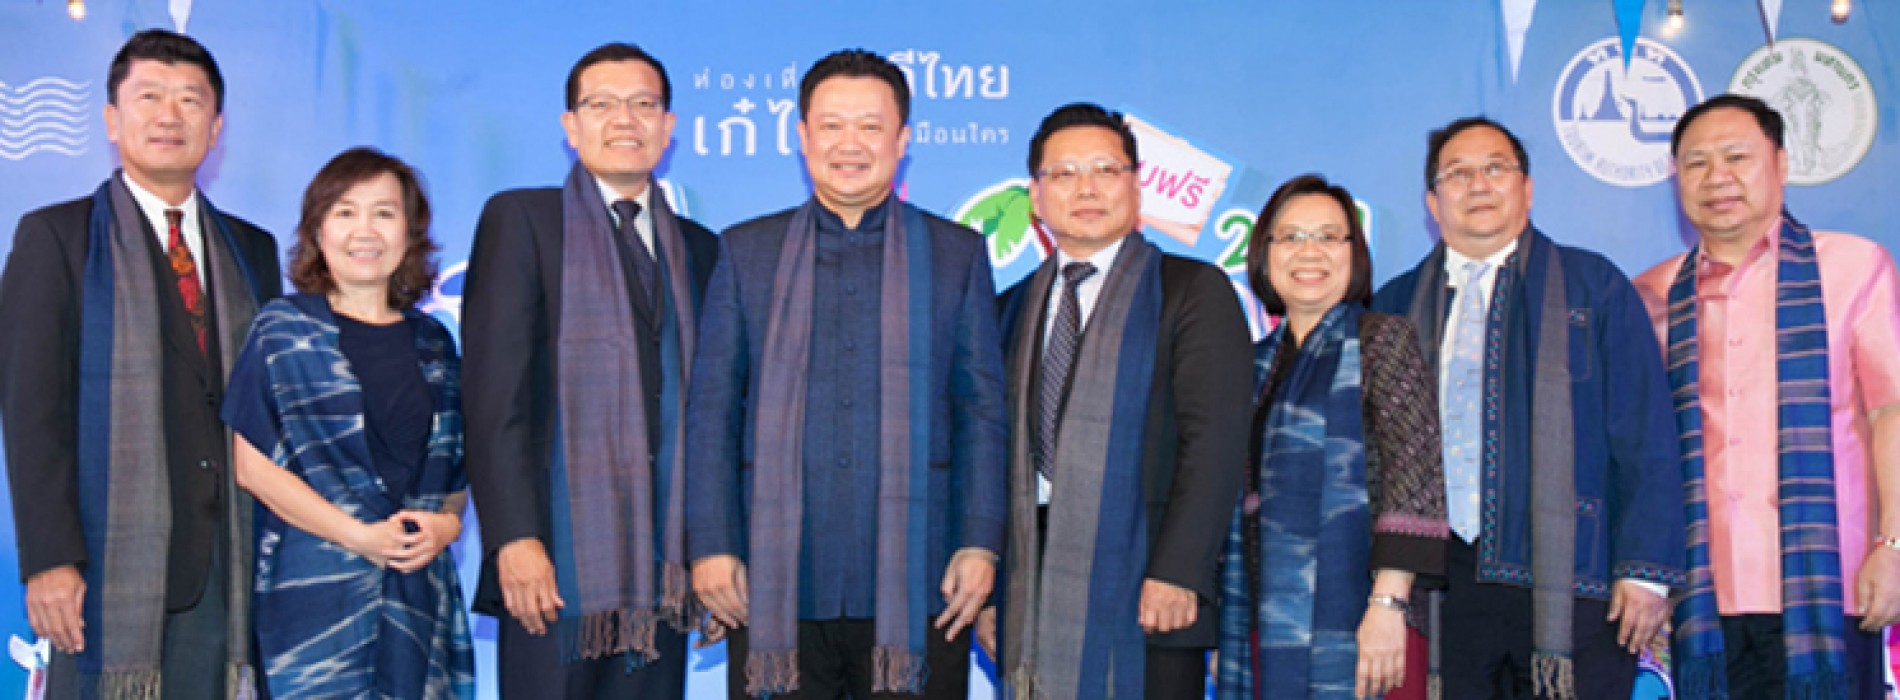 TAT spotlights the essence of Thainess with Thailand Tourism Festival 2016